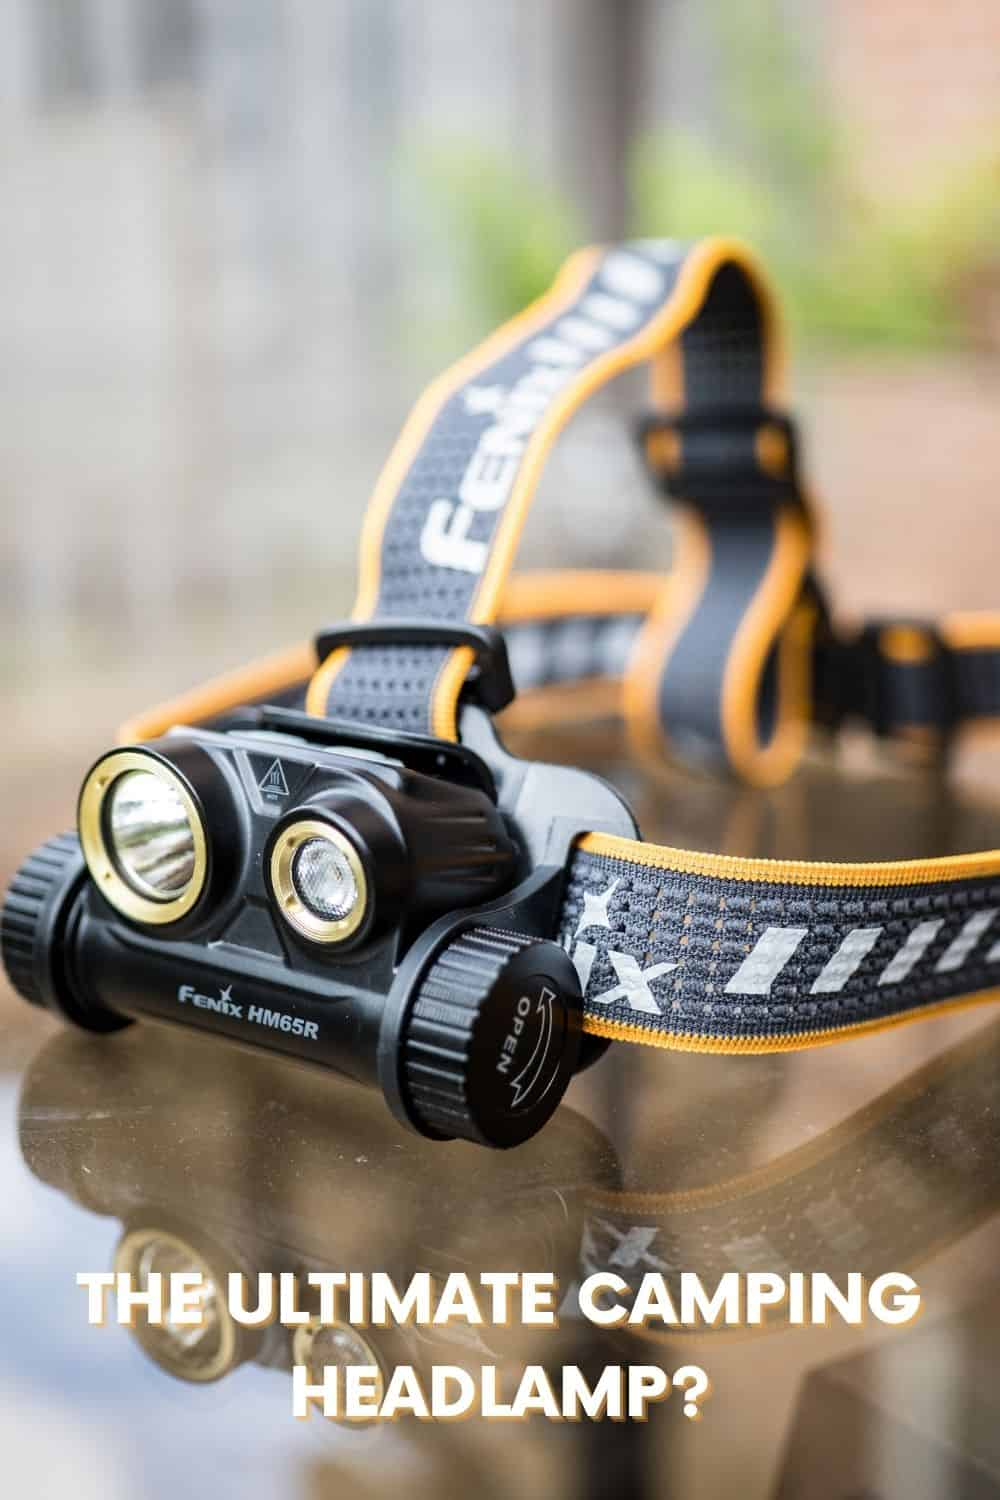 Best Headlamp For Camping - Fenix HM65R Review